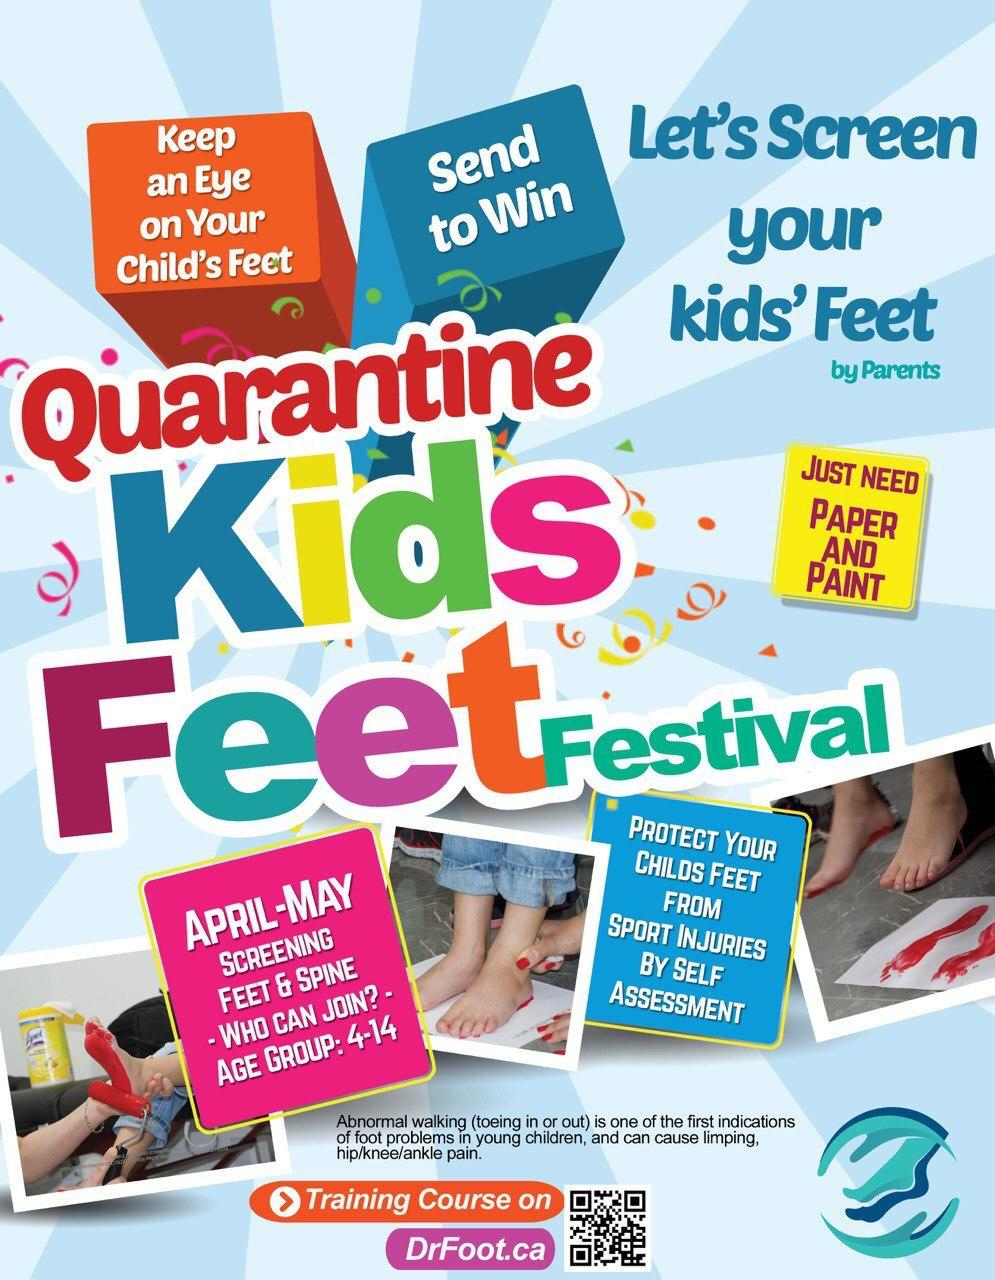 Dr. Foot Inaugurates kids Foot and Postural Screening festival for Canadian Elementary Schools on the quarantine time